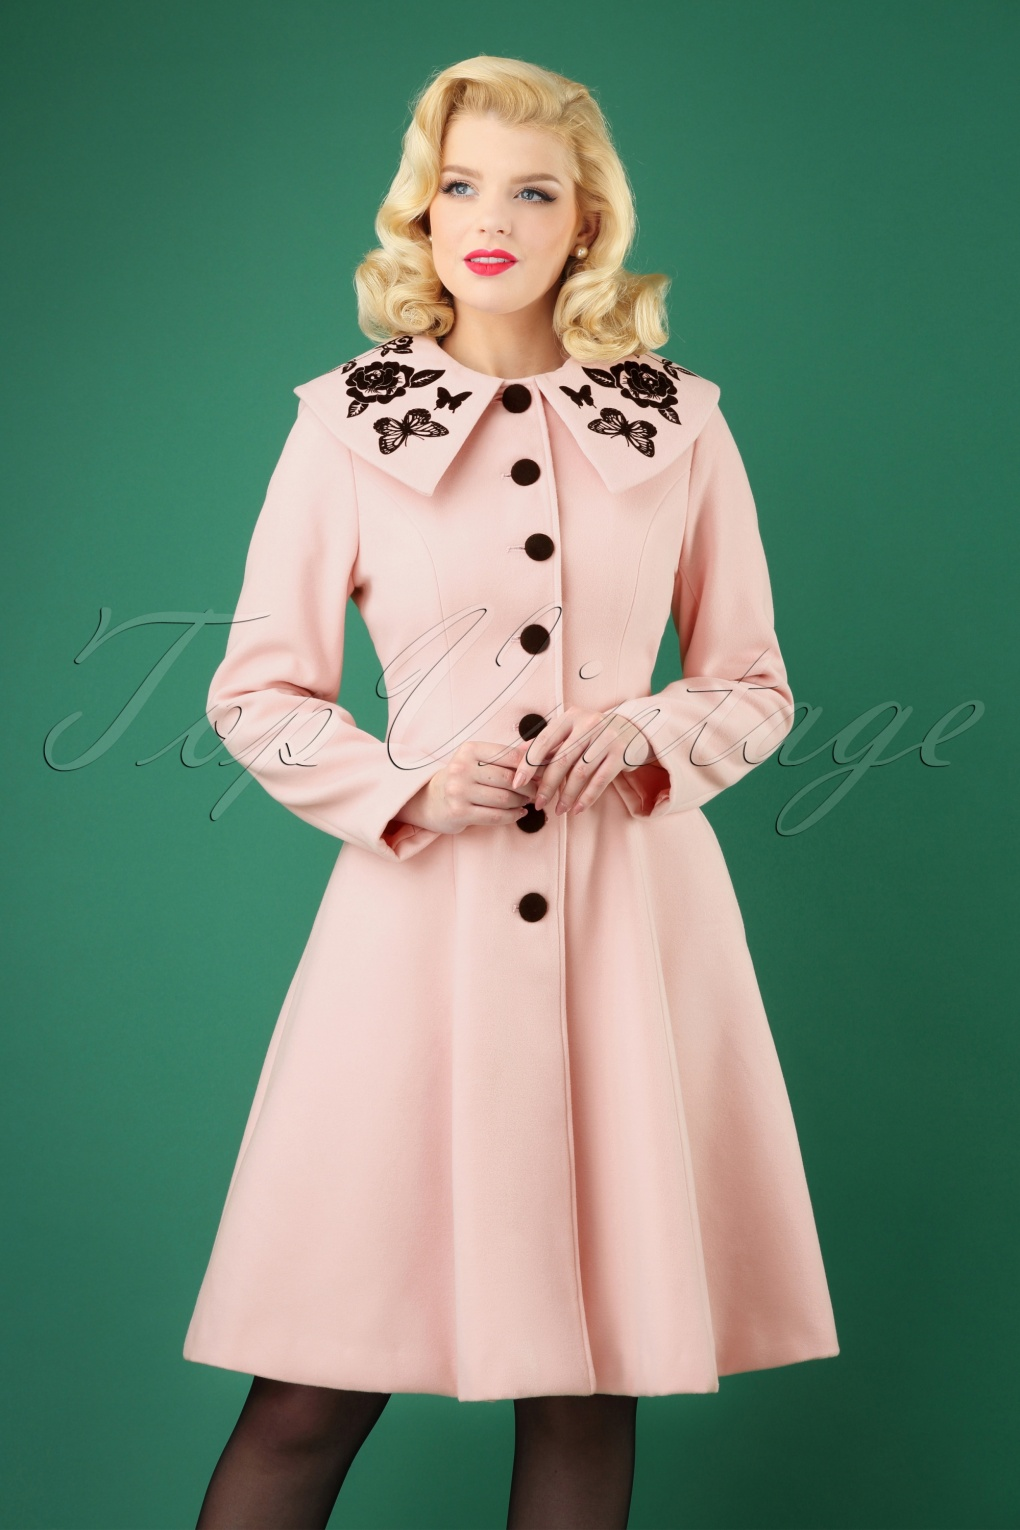 Retro Tiki Dress – Tropical, Hawaiian Dresses 50s Hermione Coat in Pink £121.18 AT vintagedancer.com